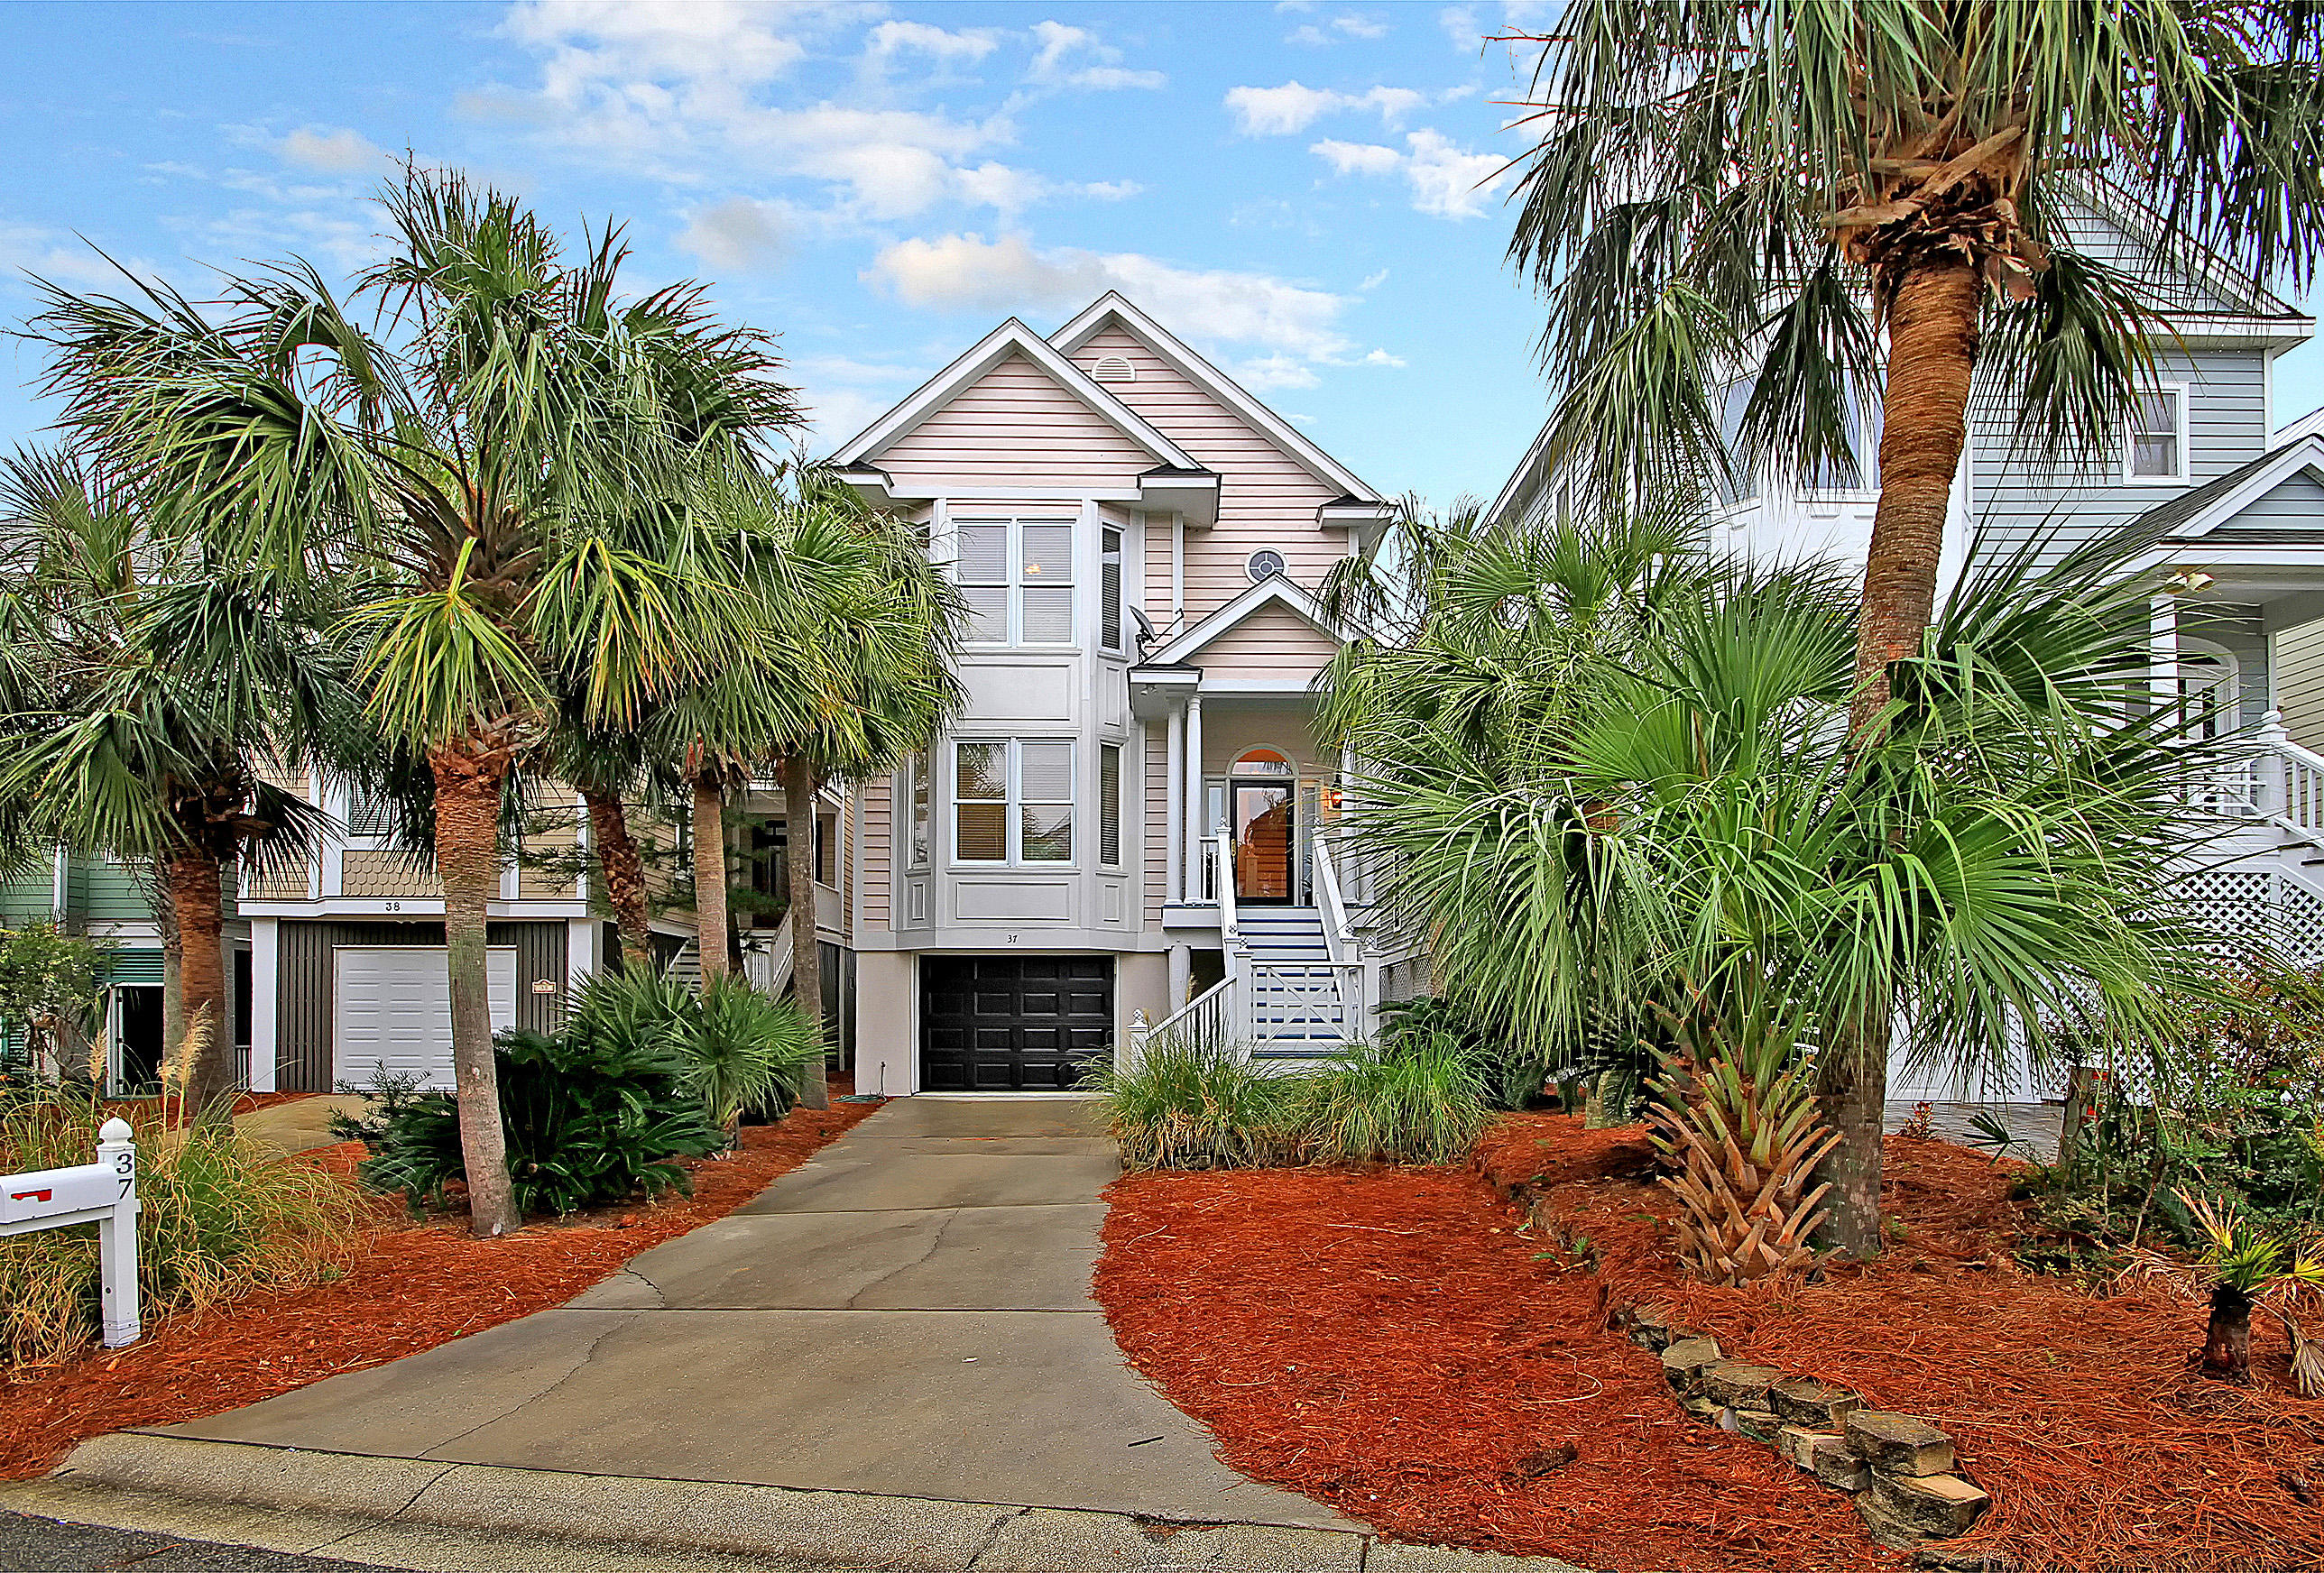 Wild Dunes Homes For Sale - 37 Ocean Point, Isle of Palms, SC - 39